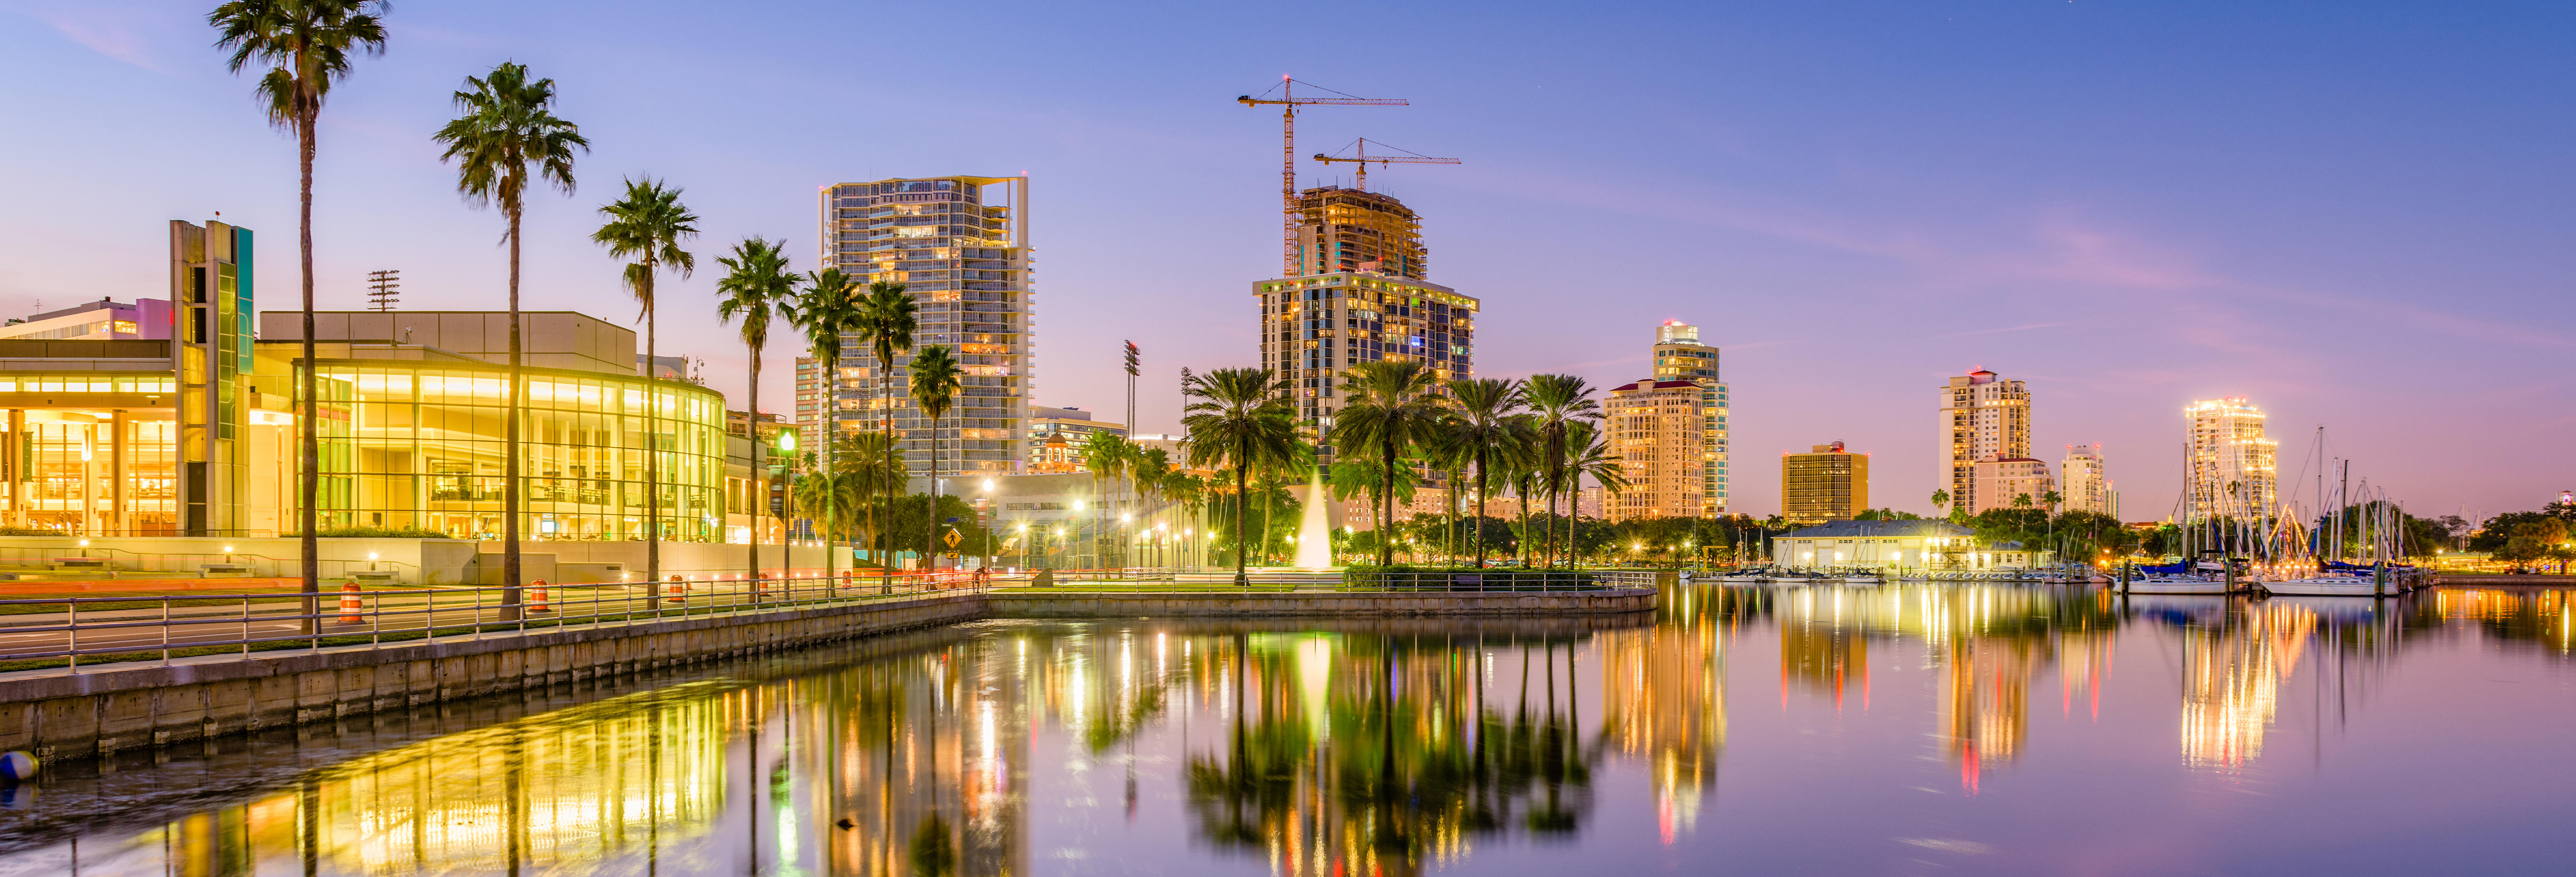 Stock Photo of St. Pete Skyline